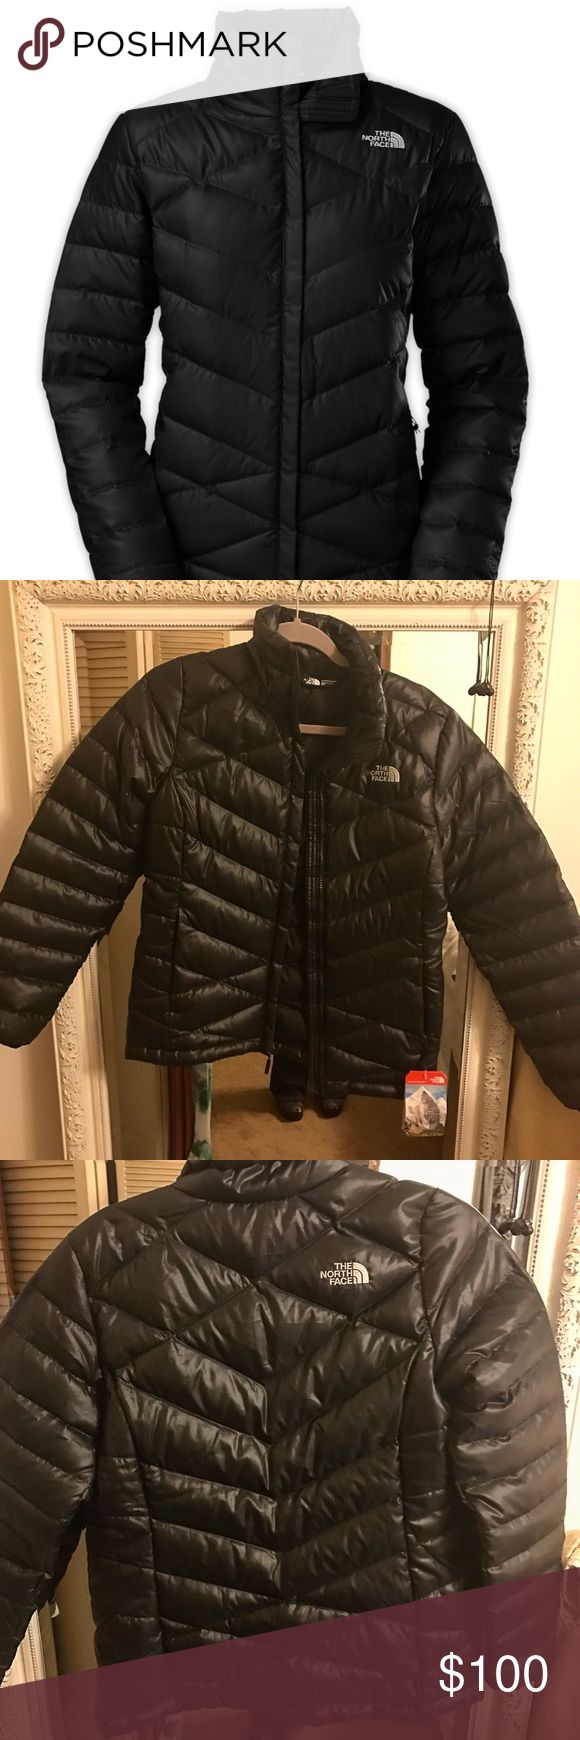 North Face Aconcagua jacket BNWT! Purchased from north face outlet and waited to long too return! Perfect condition, open to offers The North Face Jackets & Coats Puffers